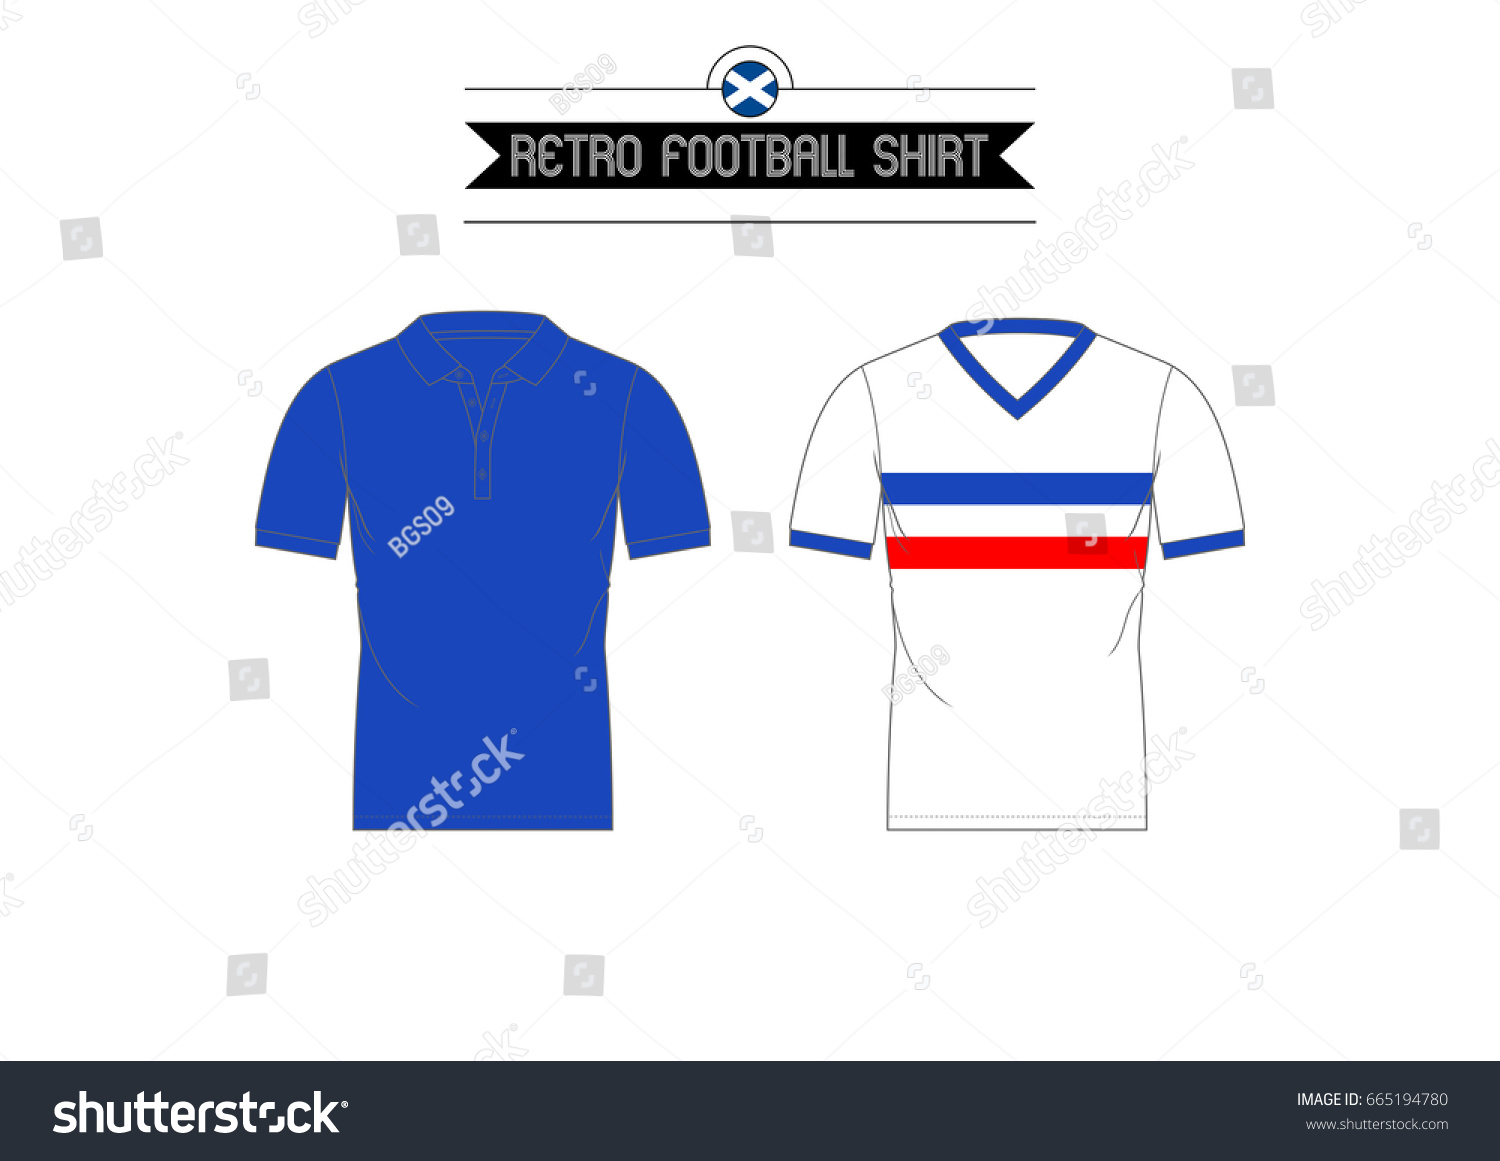 051dcd144 Retro Glasgow Rangers Football Shirts